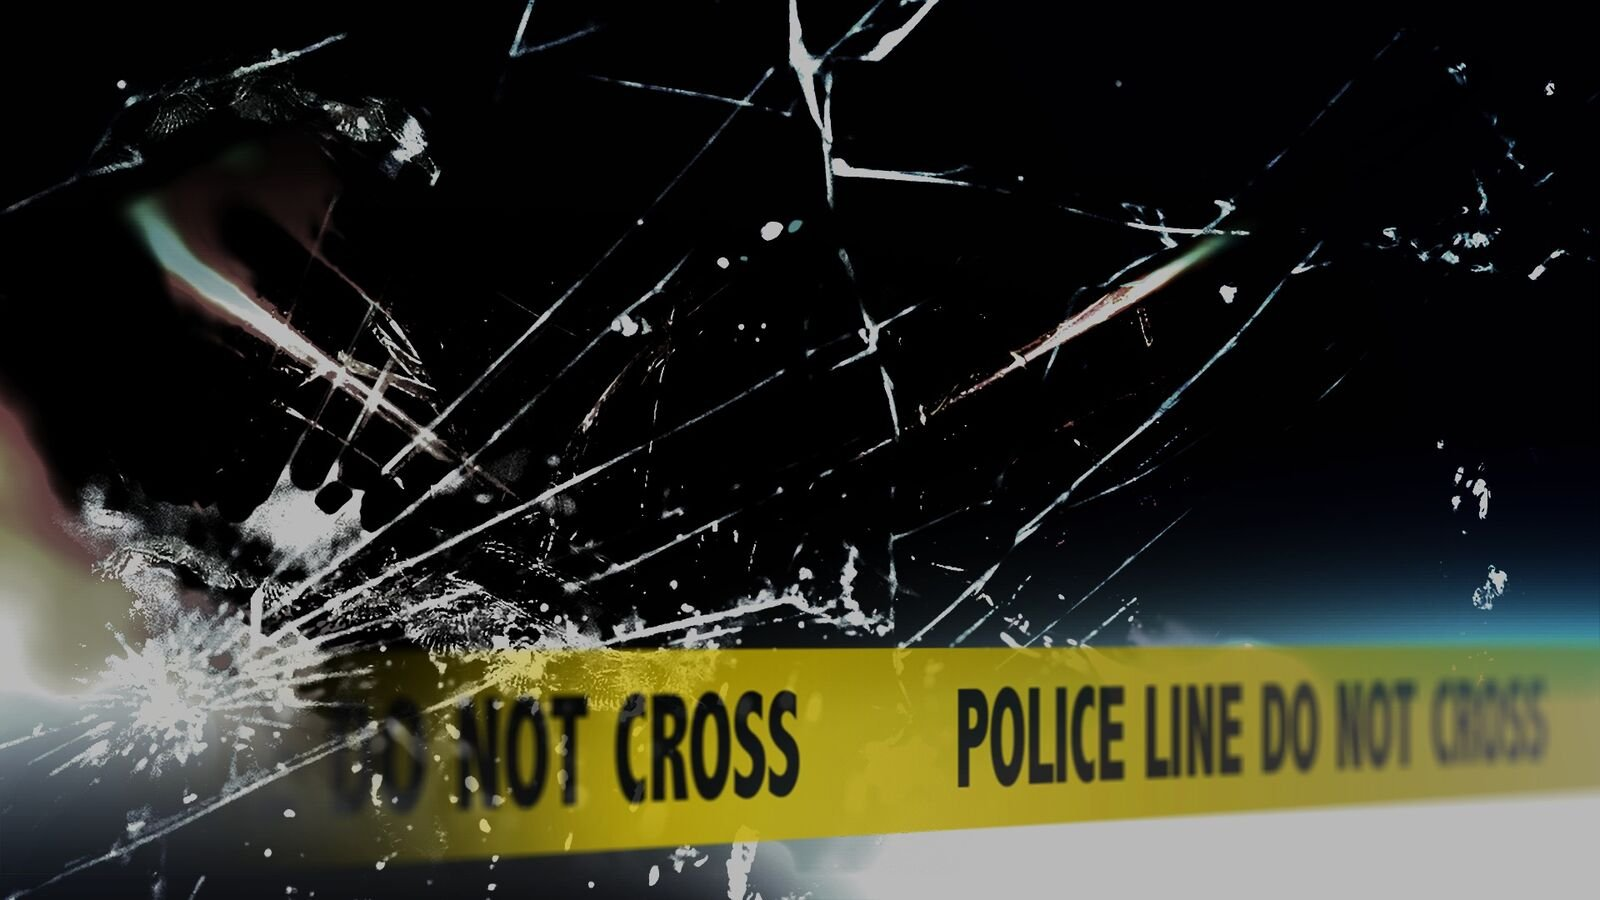 Utah Highway Patrol says a 12-year-old boy was struck and killed by a vehicle as he was crossing the Interstate 15 in Cedar City. (Source: AP Photo)